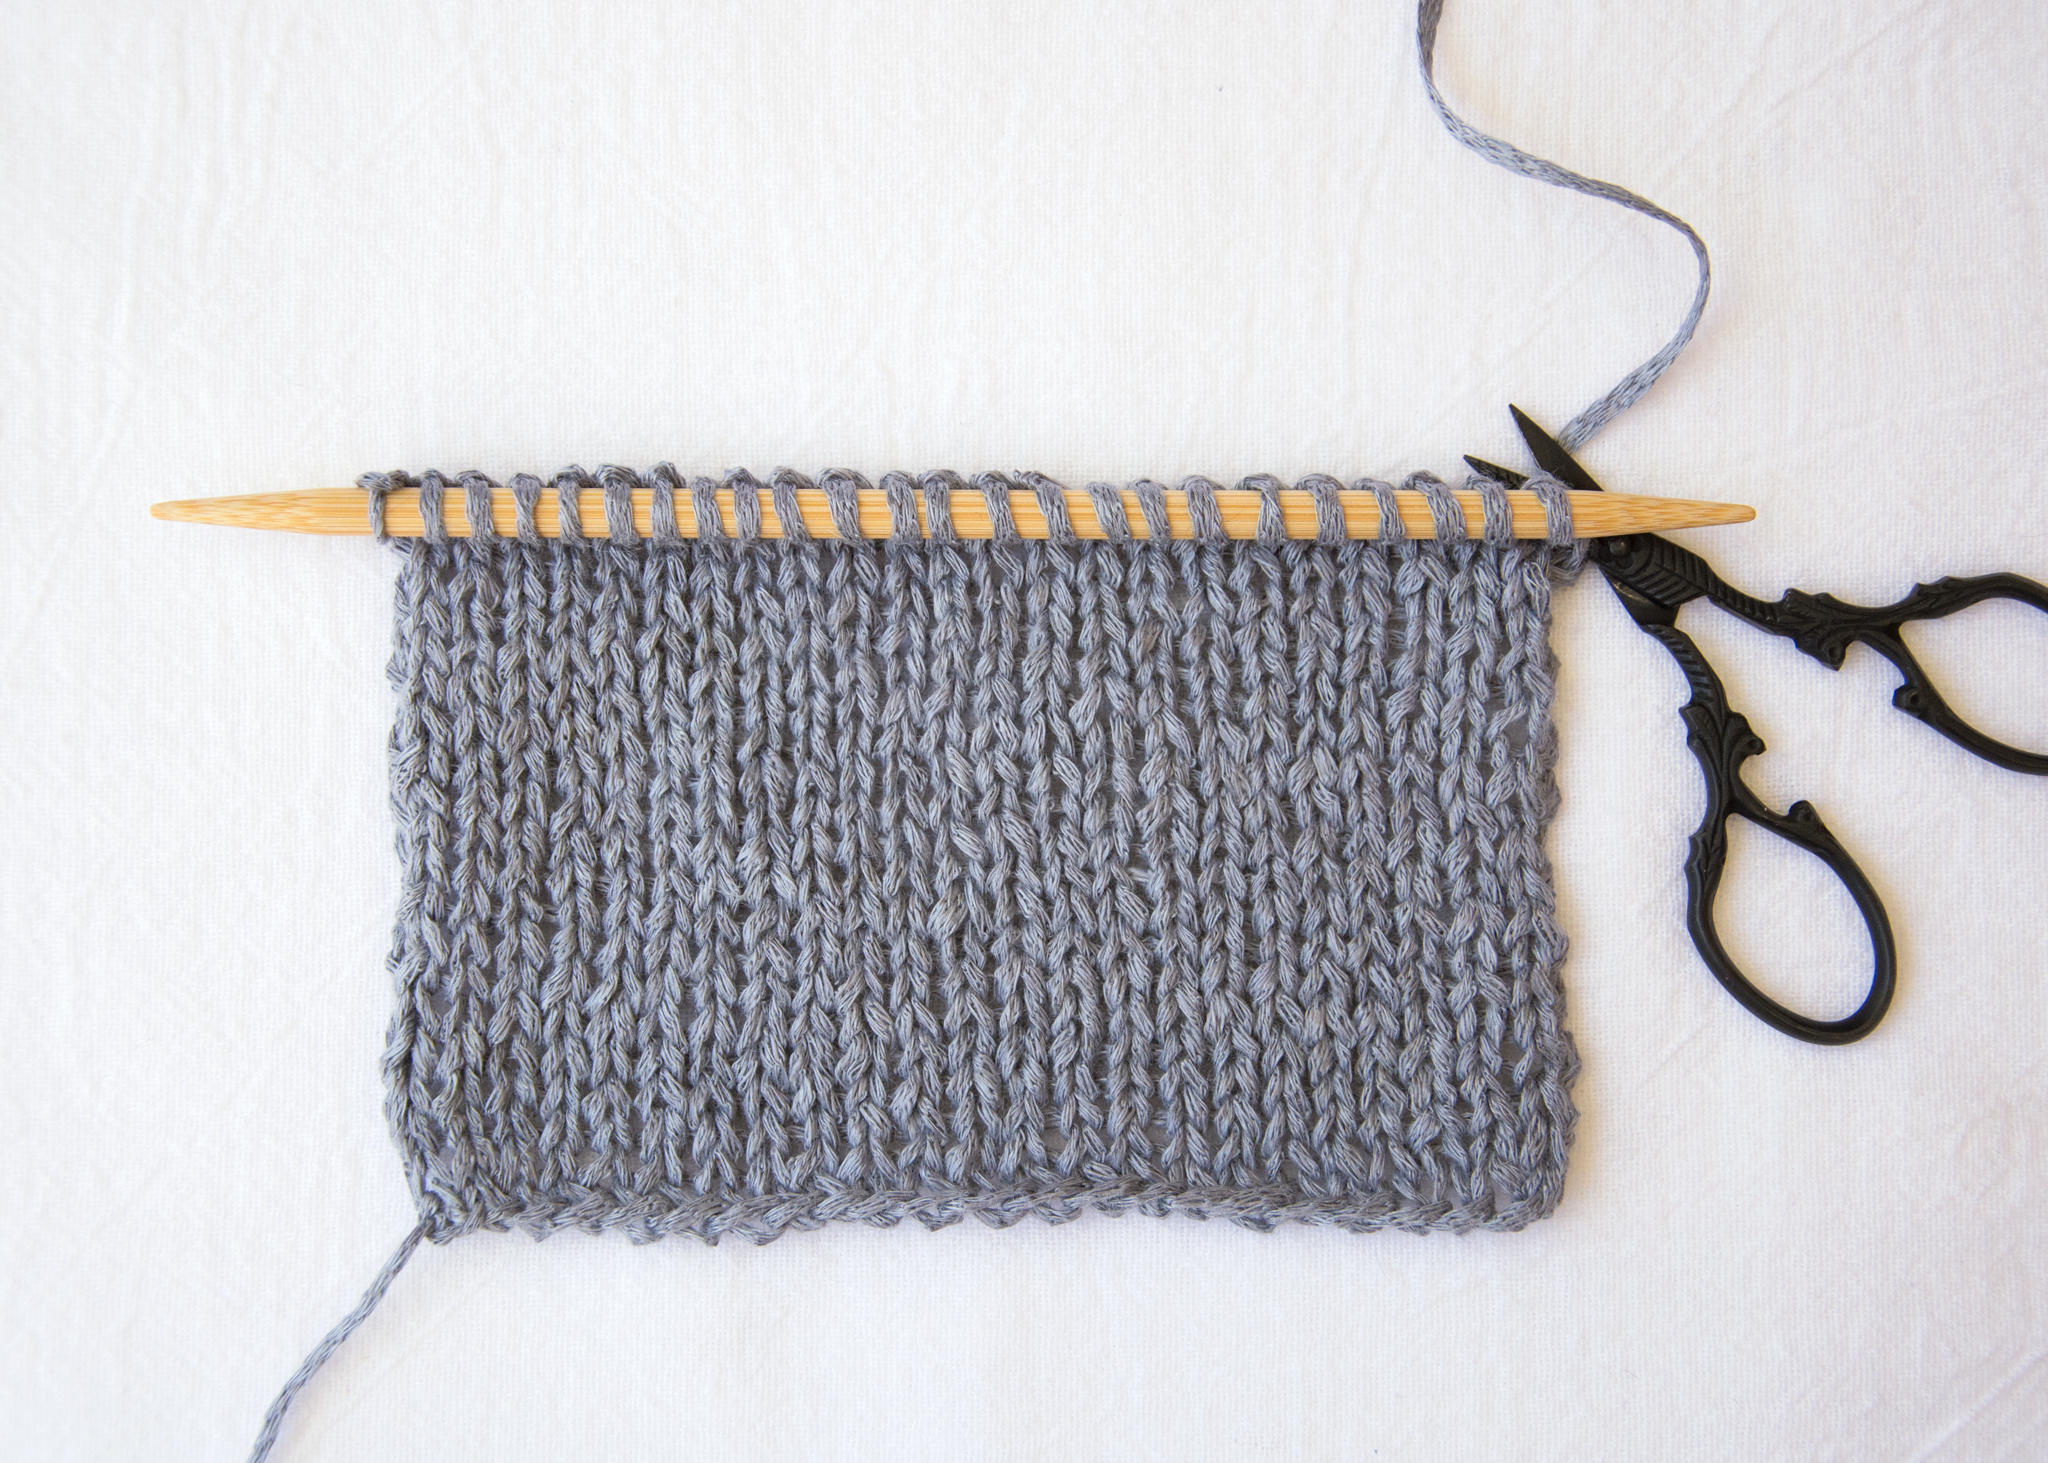 Cut the yarn flush with the edge of the last stitch.